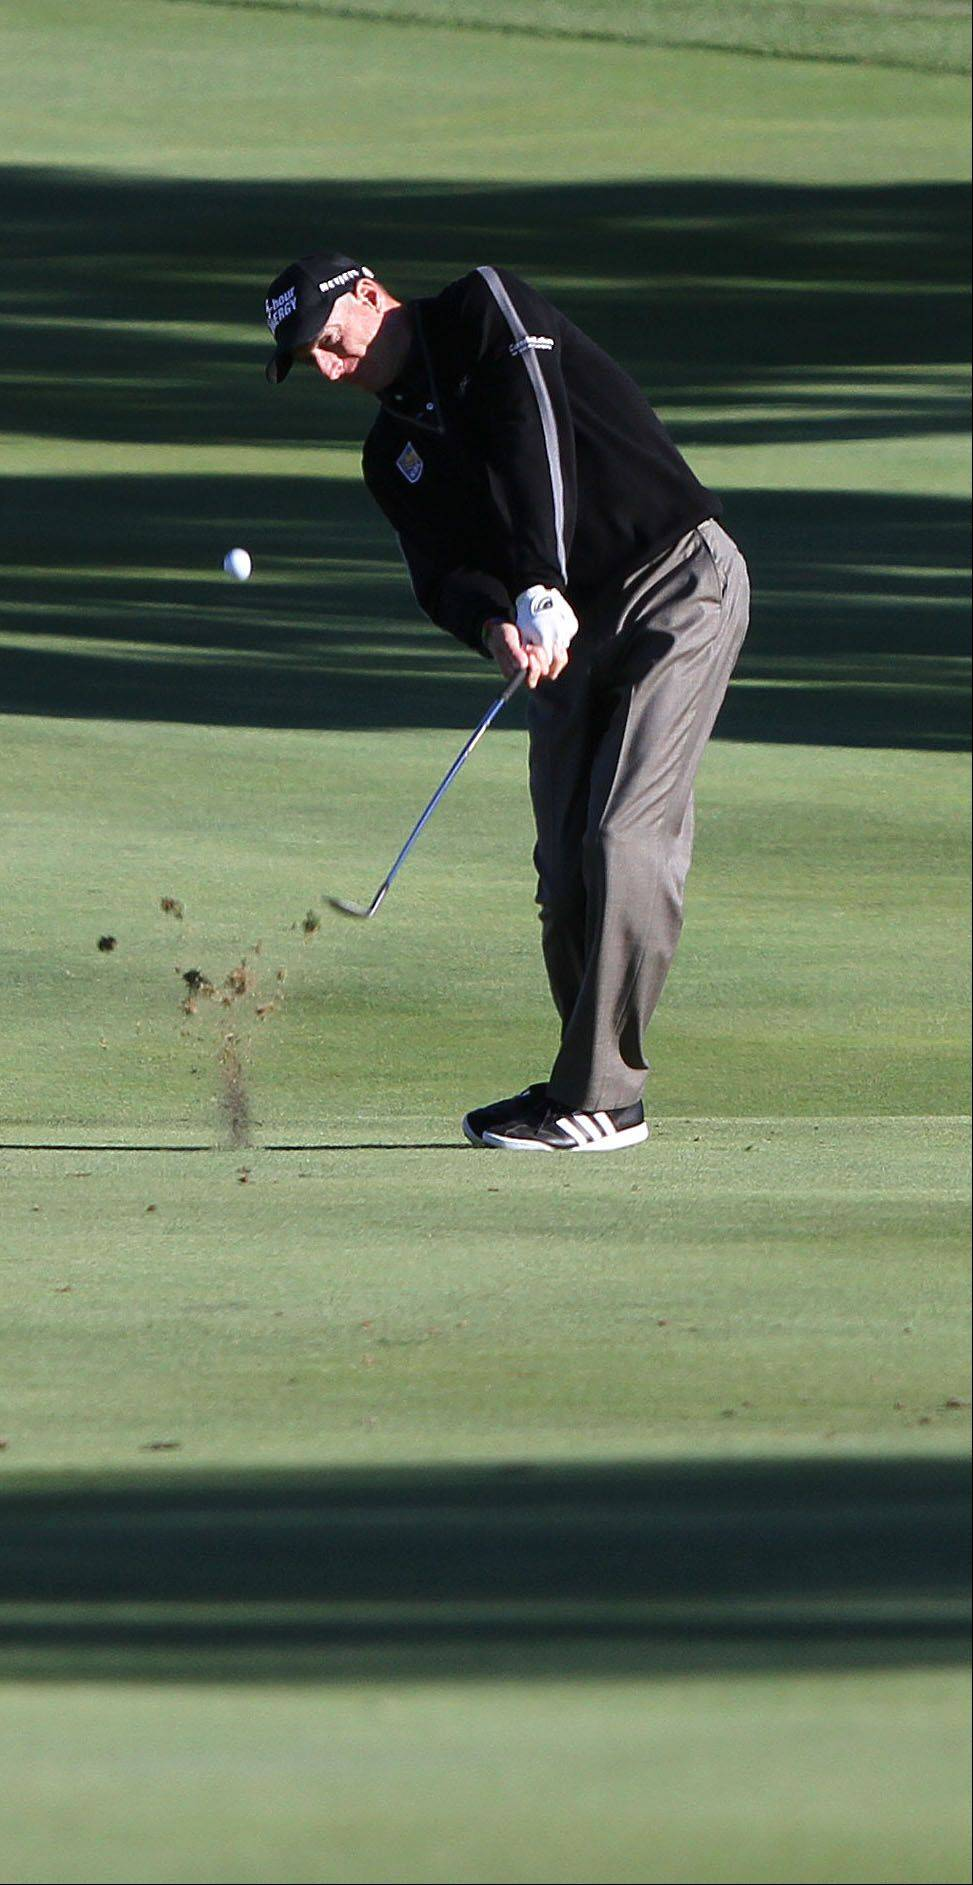 Jim Furyk hits his approach shot to the 9th hole.